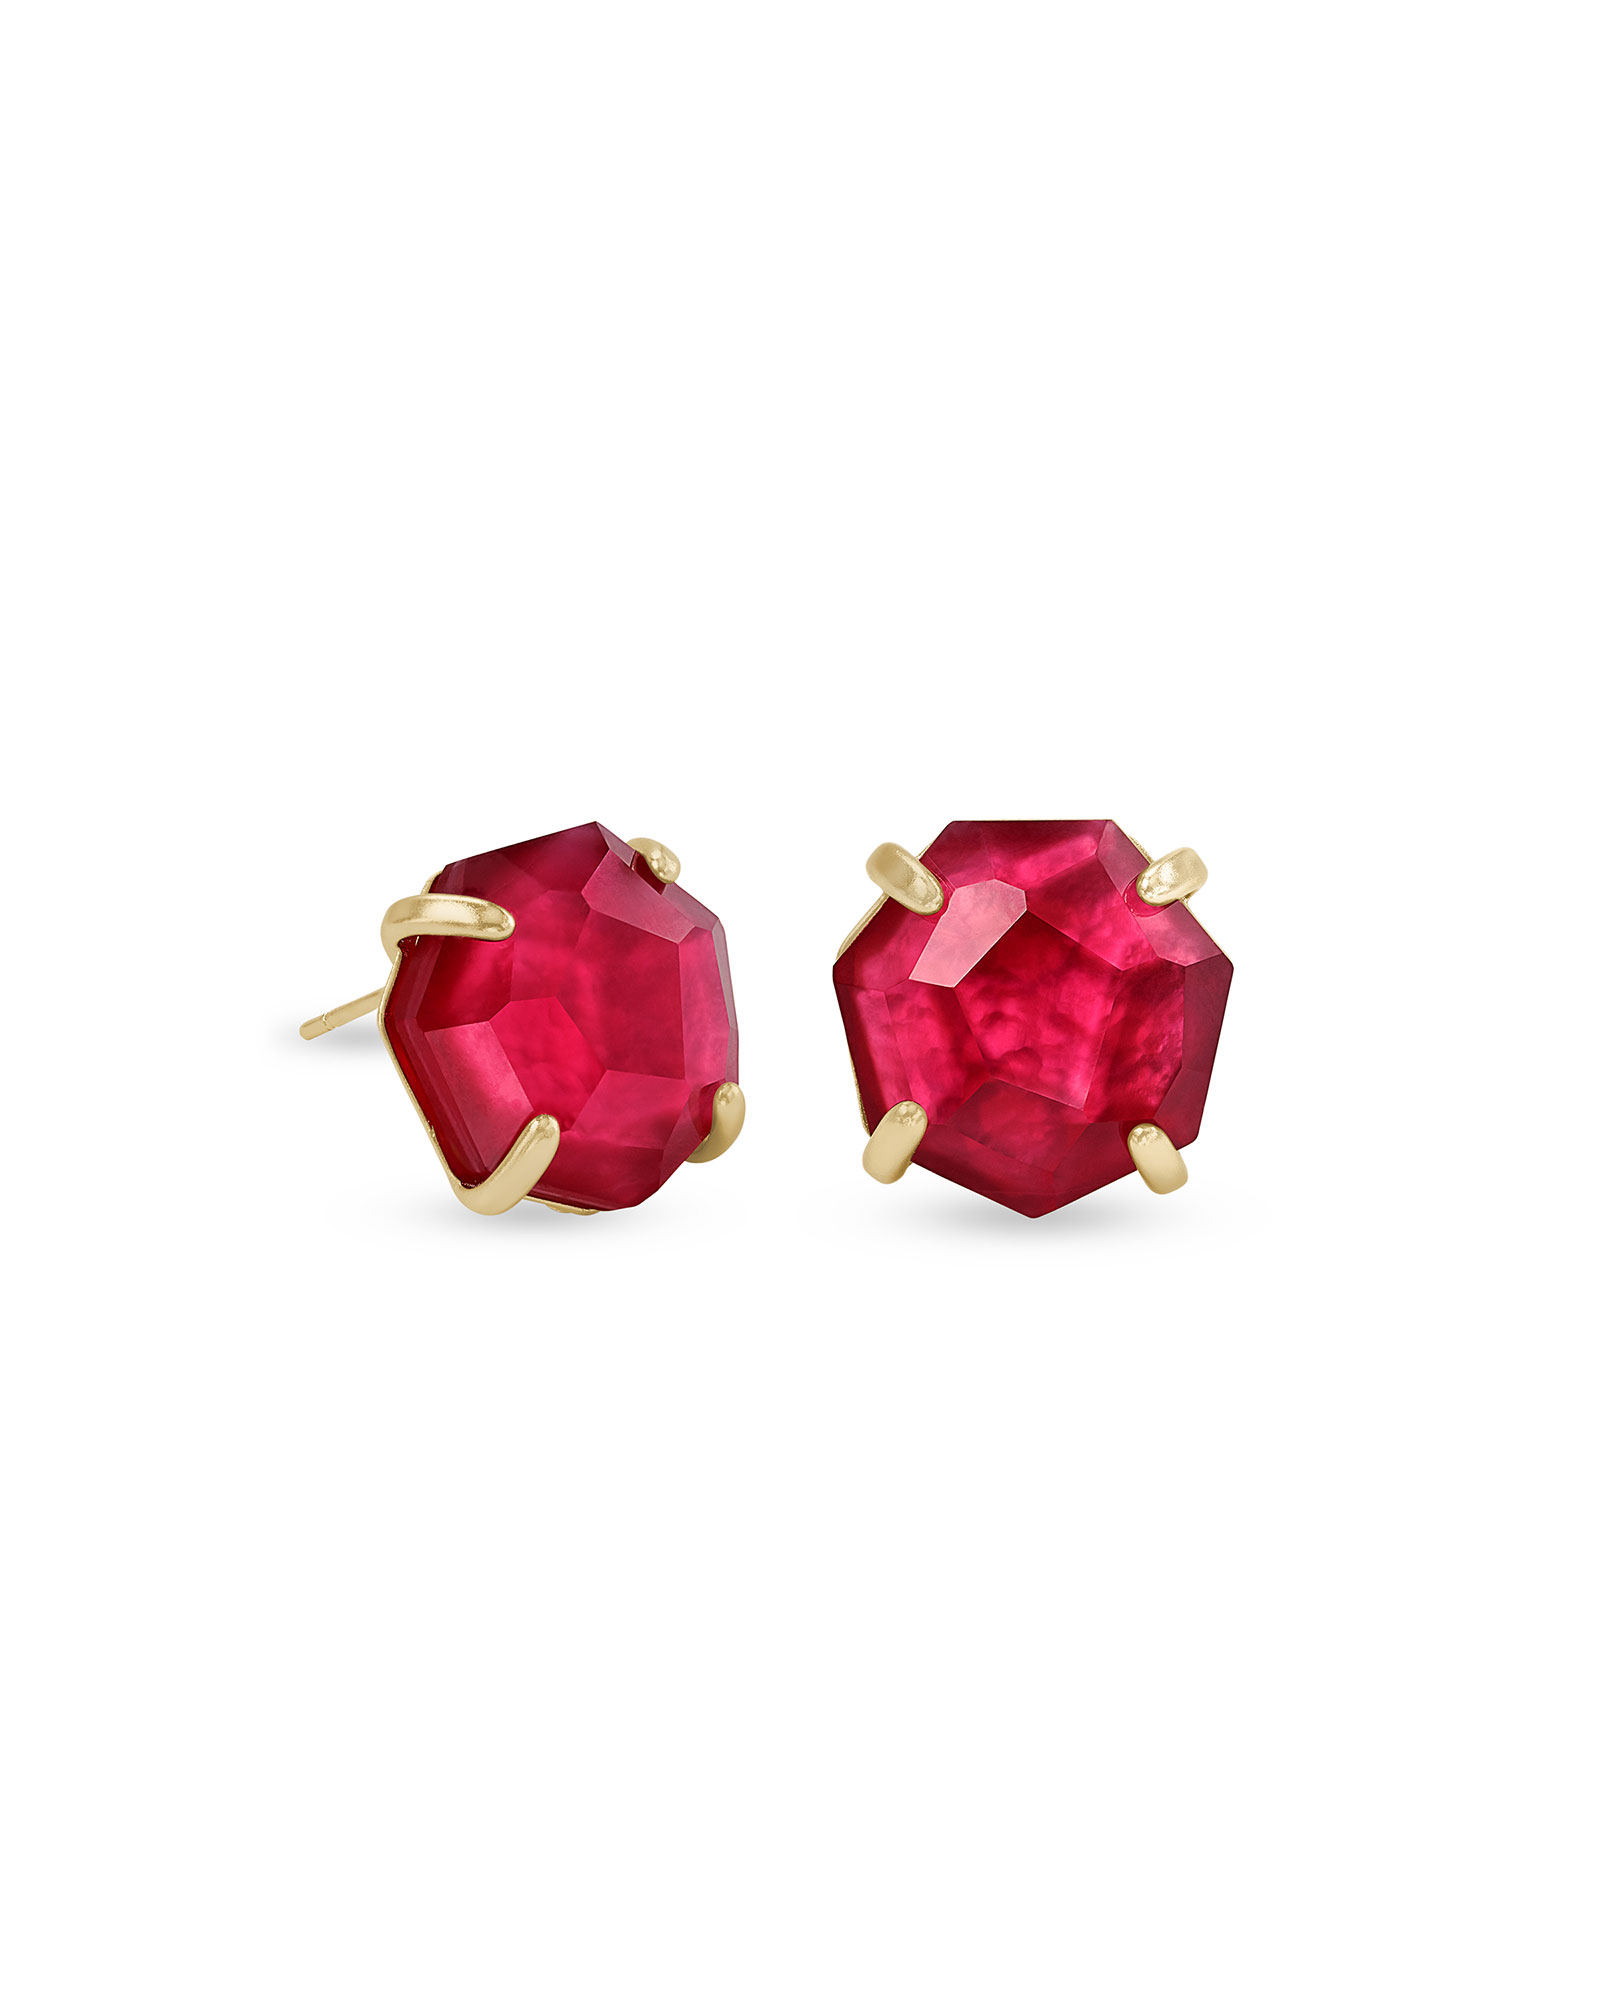 Ryan Gold Stud Earrings in Berry Illusion